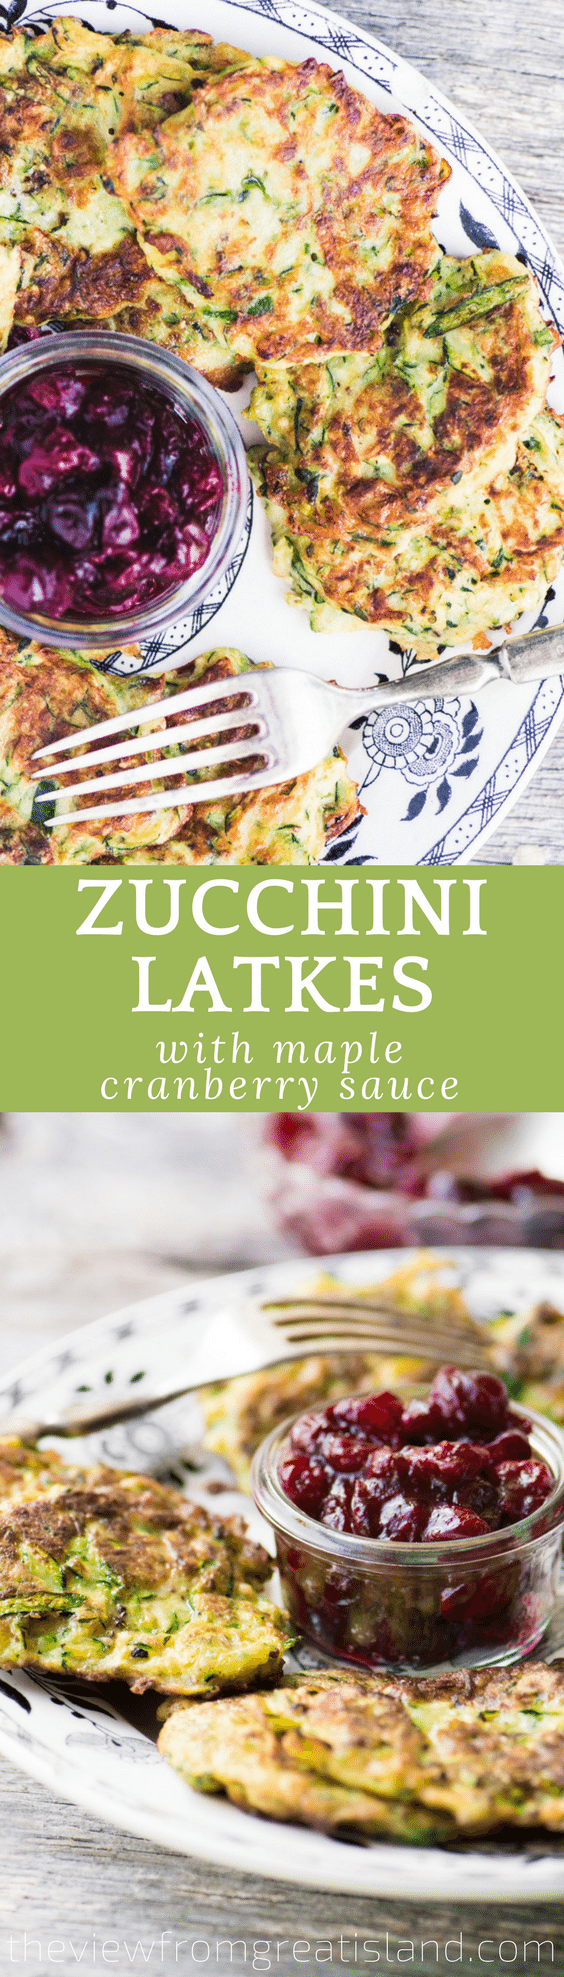 Zucchini Latkes with Maple Cranberry Sauce is a colorful twist on a beloved Passover and Hanukkah tradition!  #hannukah #passover #potatopancakes #latkes #zucchini #breakfast #jewishrecipe #latkerecipe #fritters #brunch #sidedish